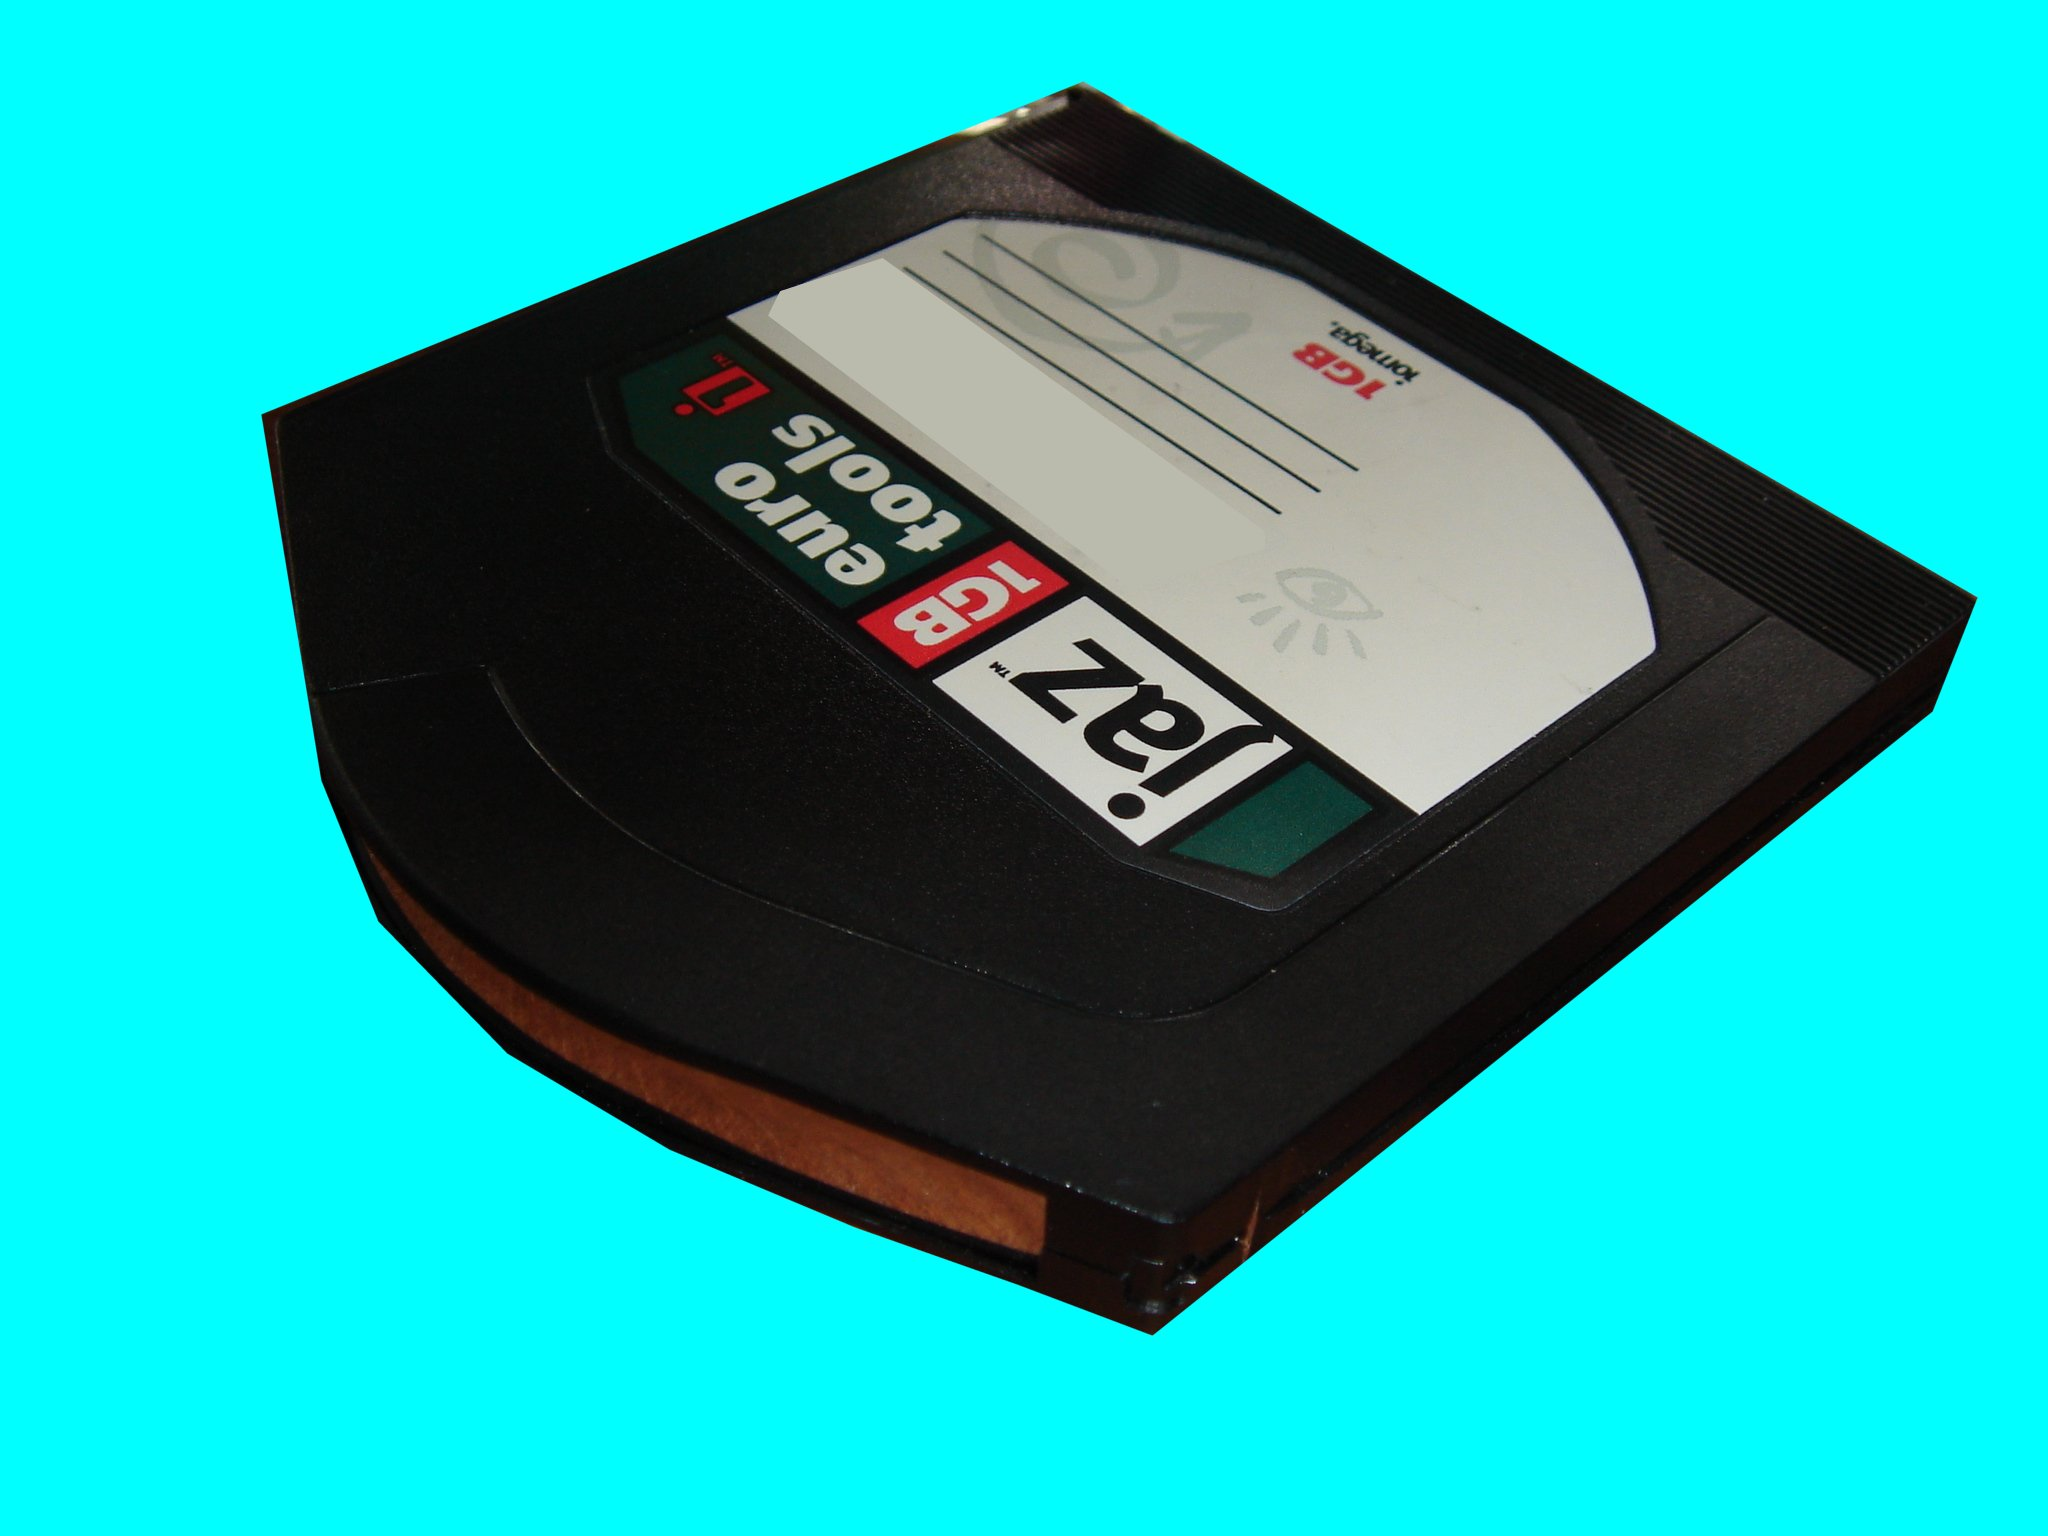 A 1GB Jaz disk that was received by us and needed files copying.